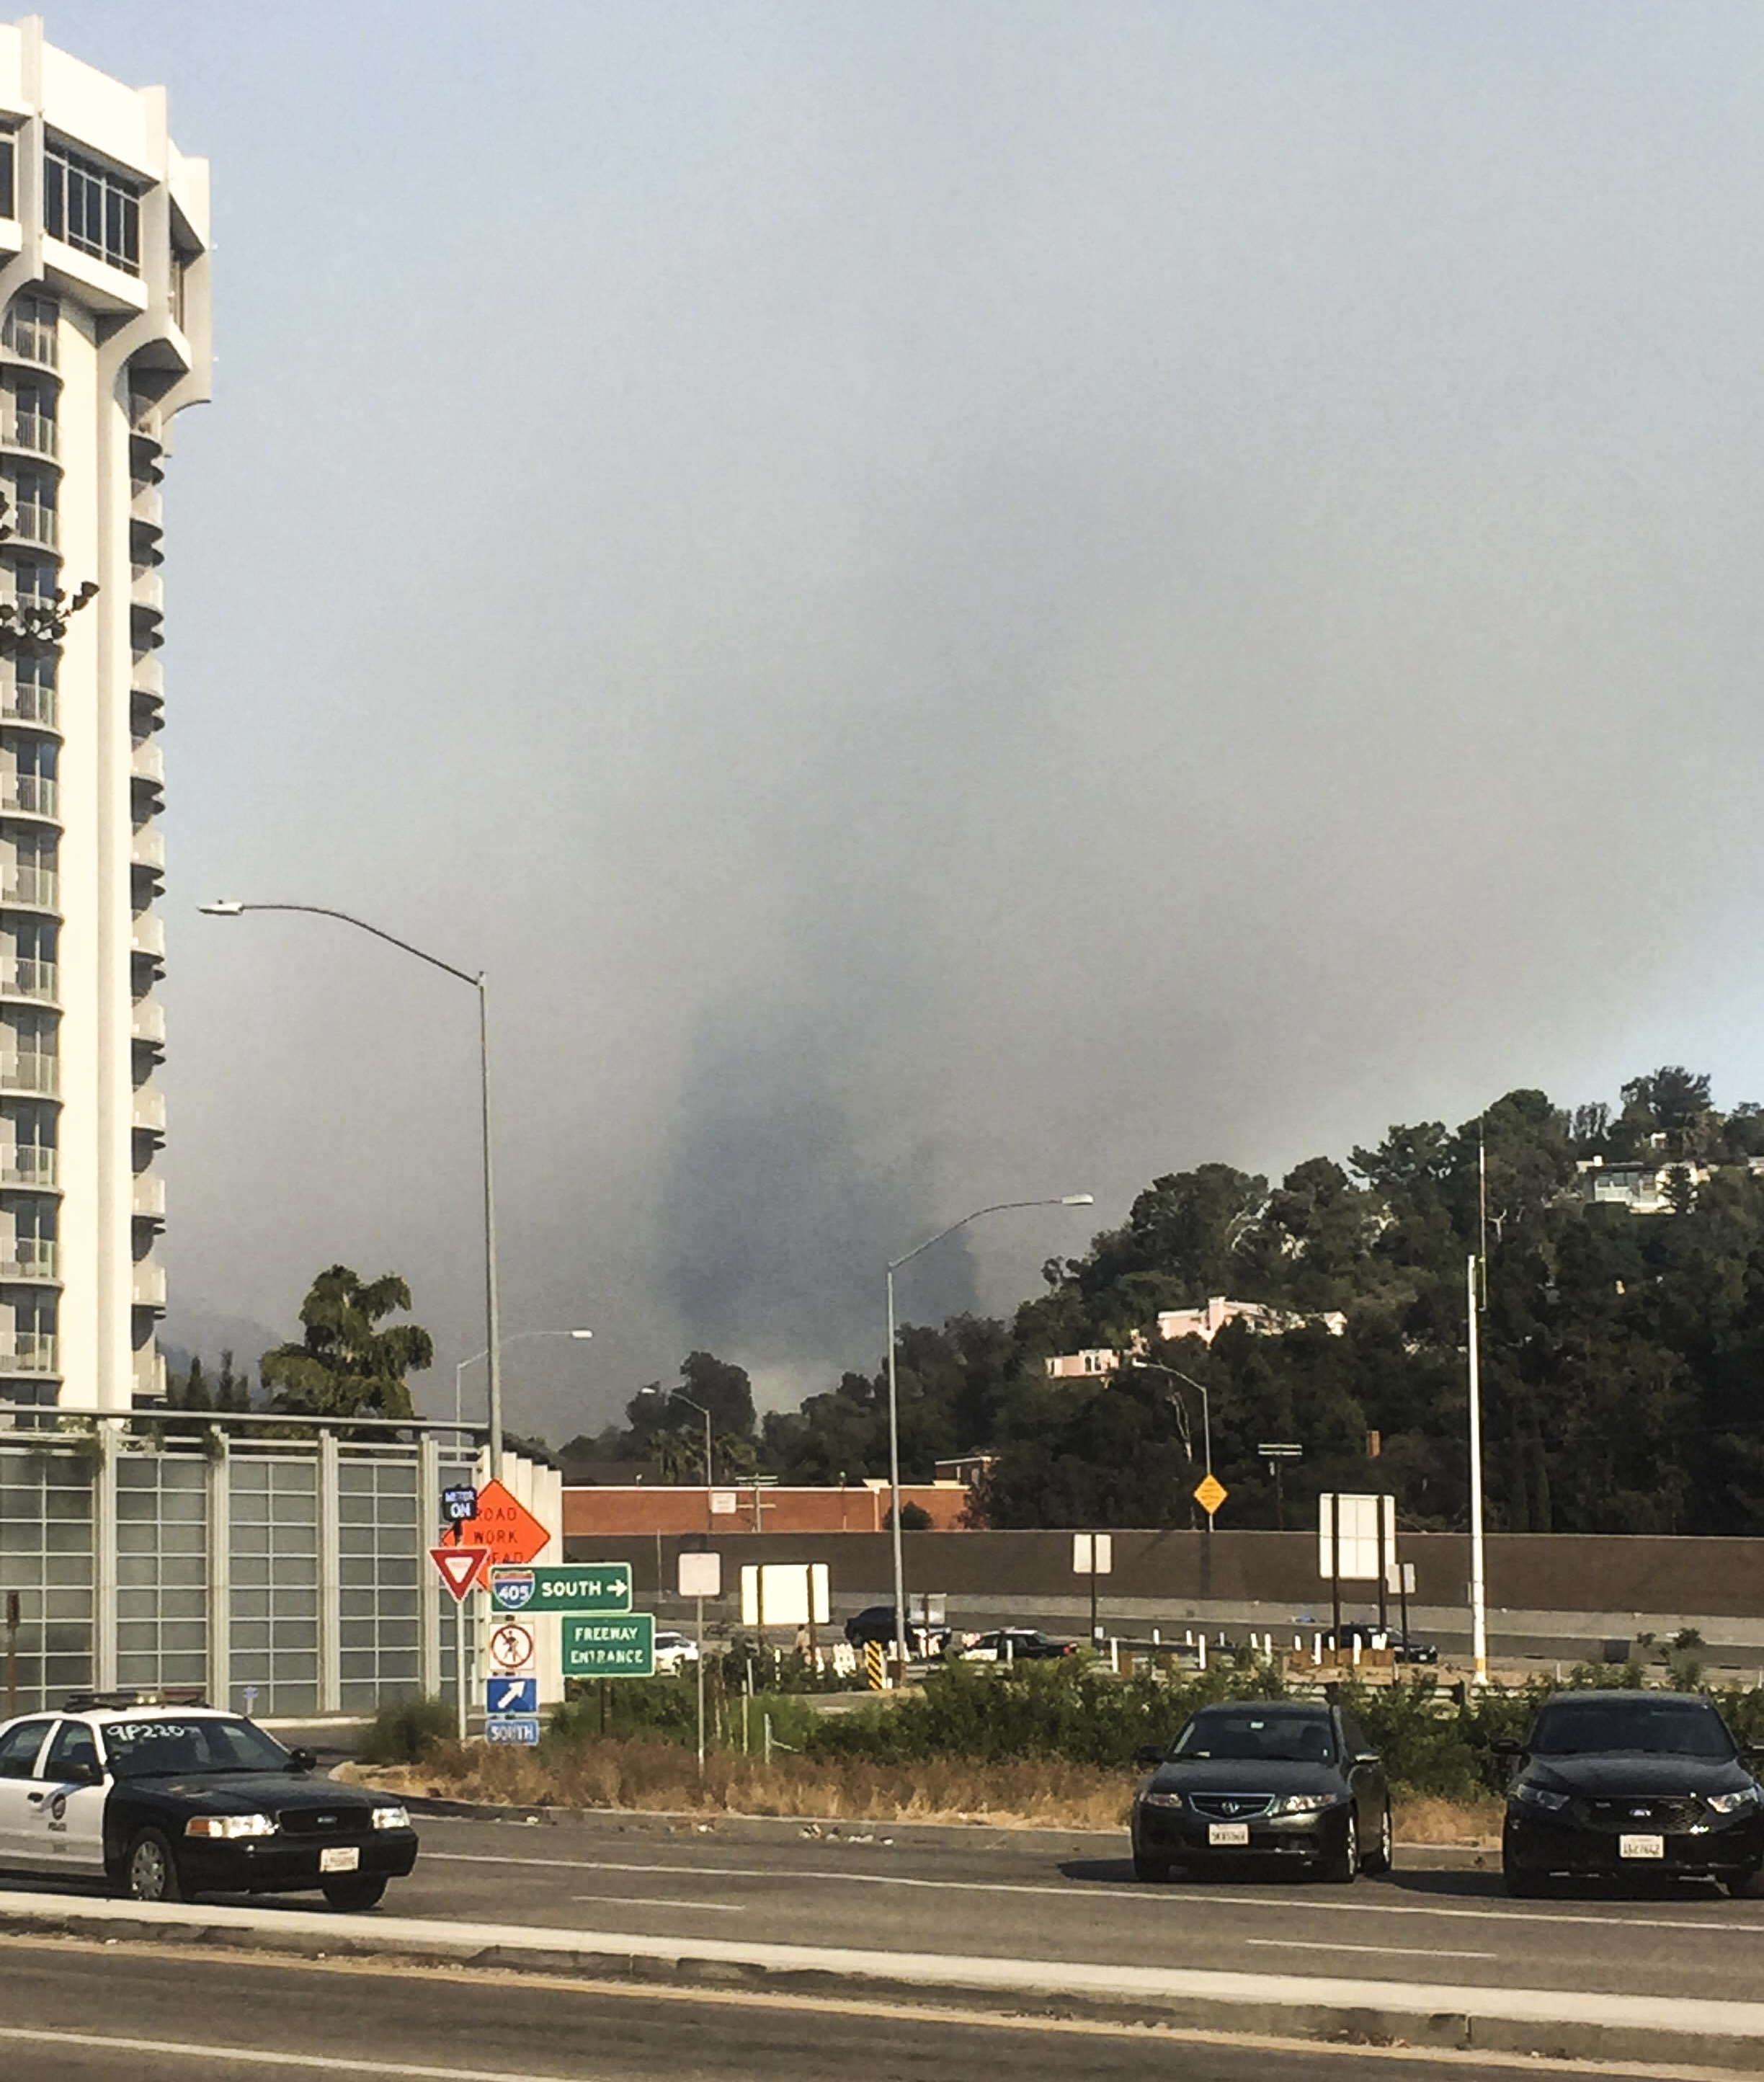 A streak of fires continues in Southern California on December 6, 2017.  In Los Angeles, Calif. both Northbound and Southbound freeways were closed to due fires near The Getty Museum along the Sepulveda pass. The fires caused many to evacute, as well as closures of several LAUSD schools. (Photo: Yuki Iwamura)